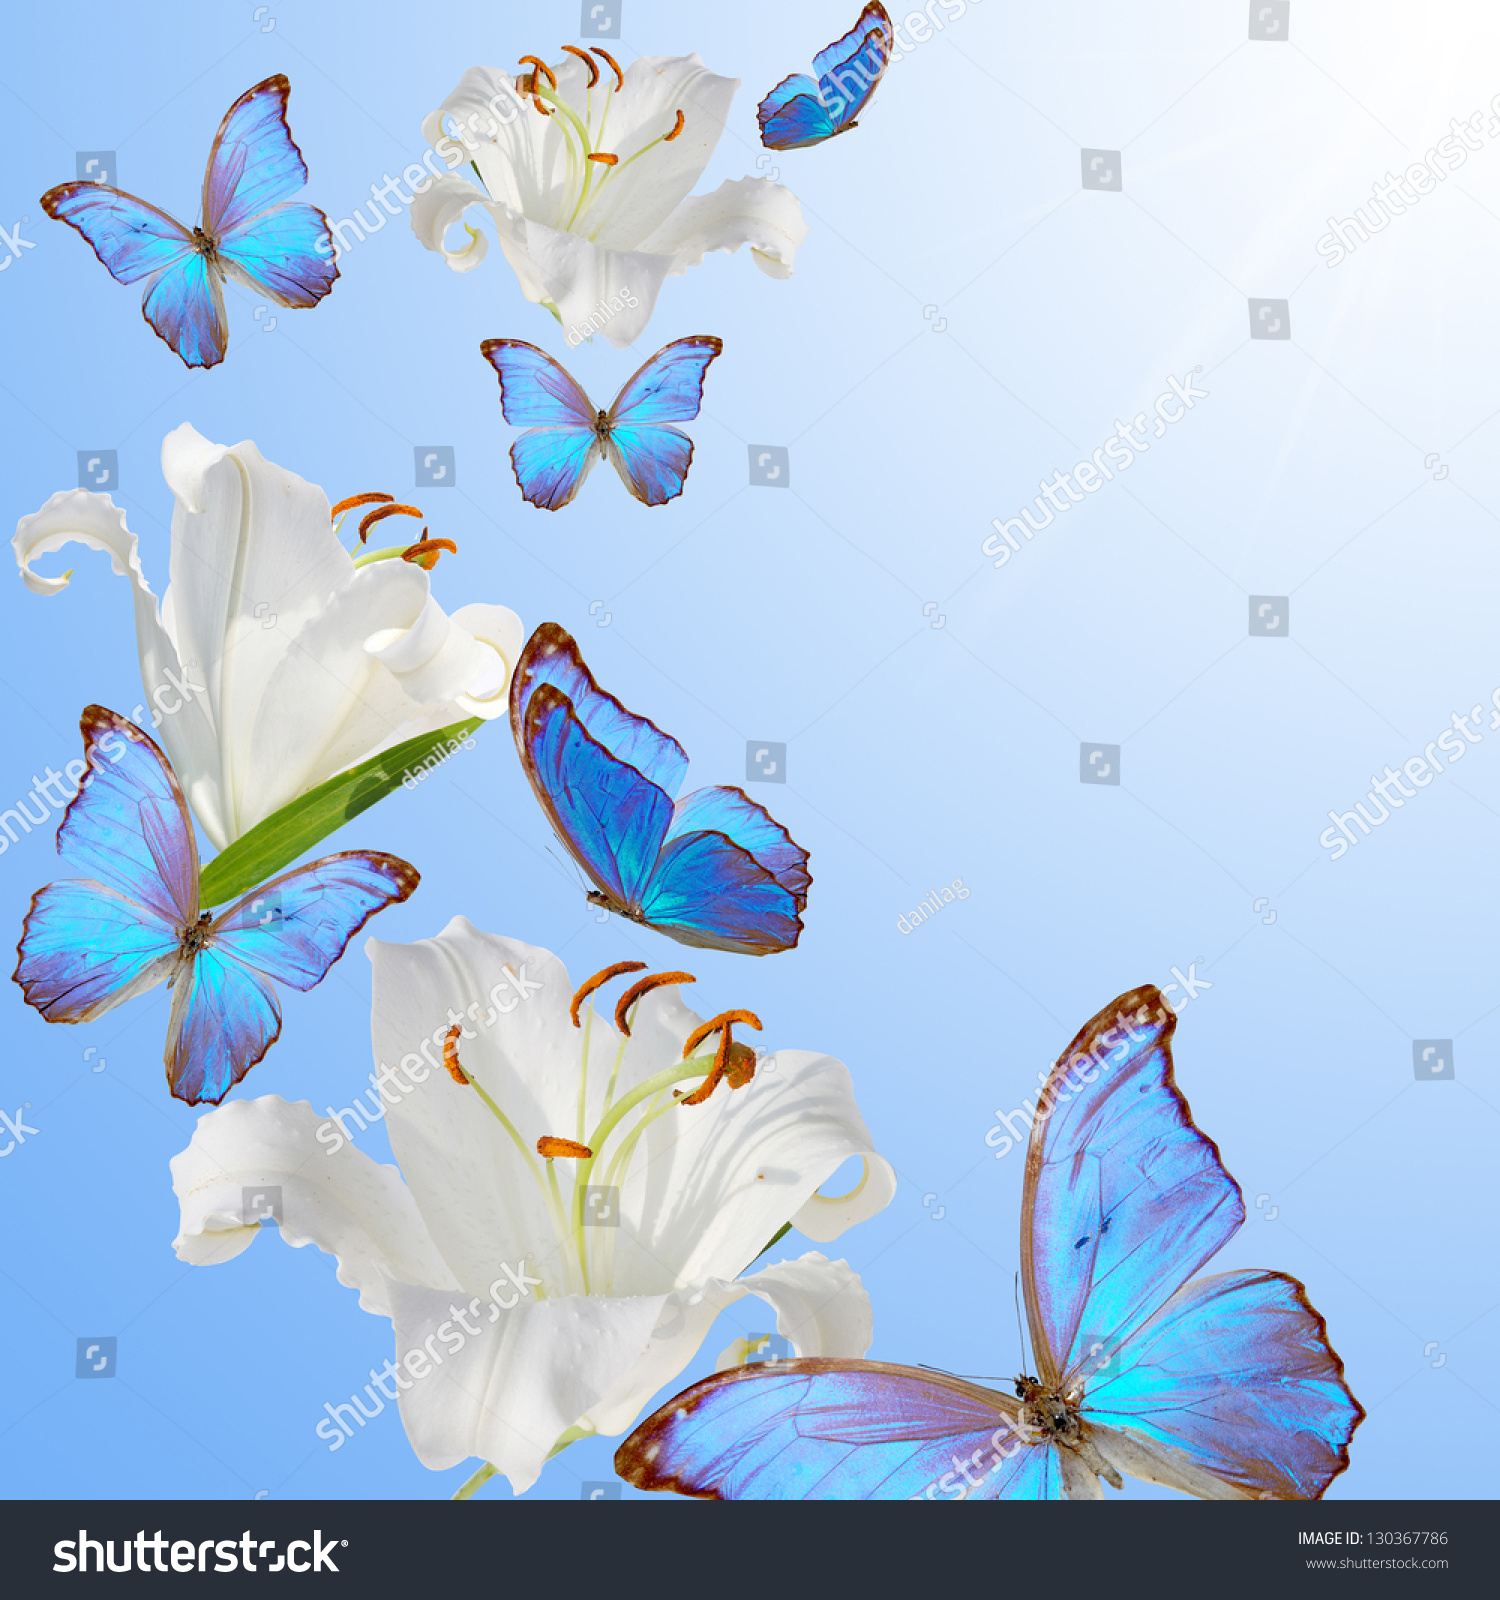 blue butterflies liliesjpg - photo #8